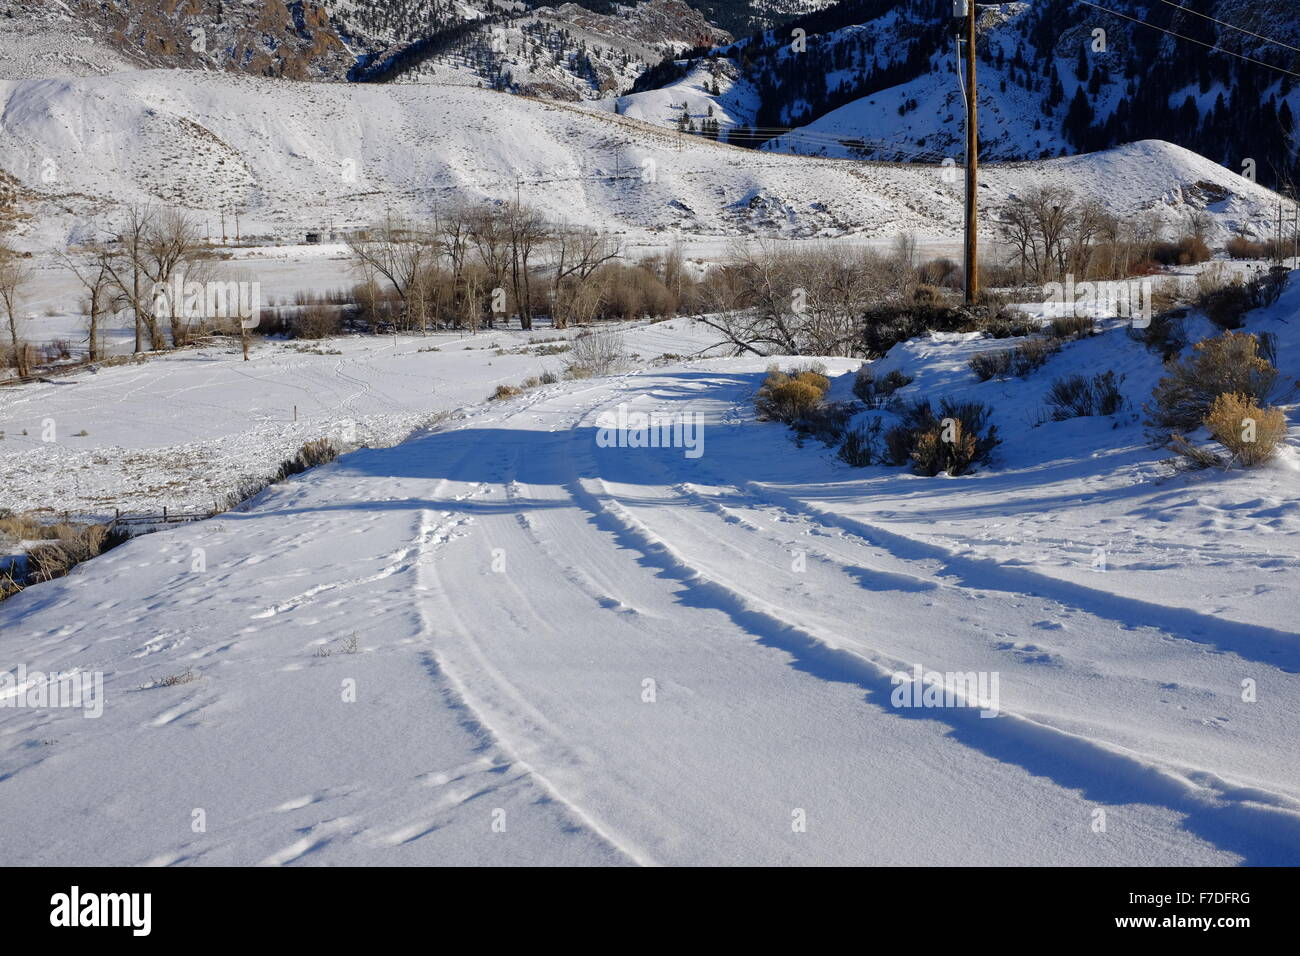 Winter snow scenes with animal tracks and frost in the trees; snow on a rural road - Stock Image